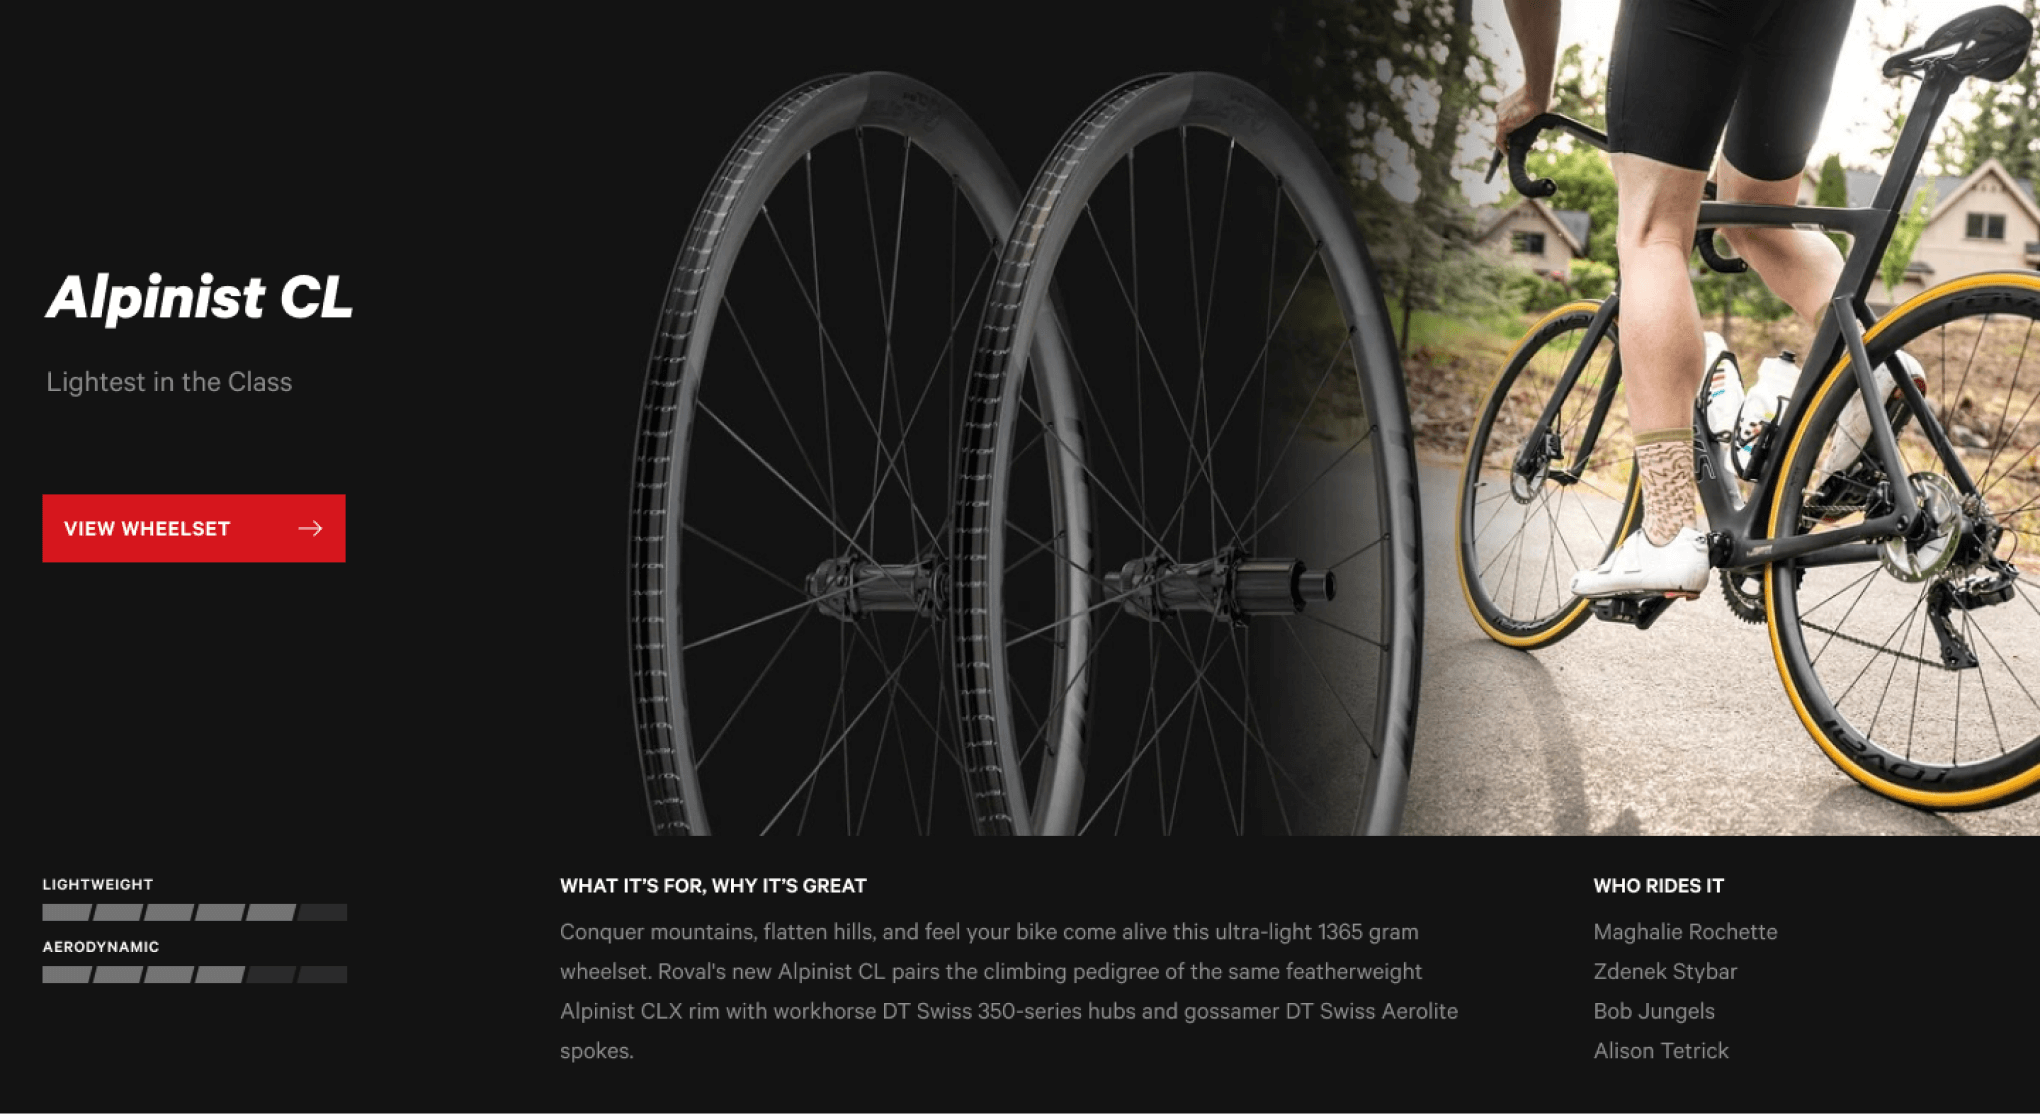 The category card for an Alpinist wheelset provides details on what it's for and why it's great.